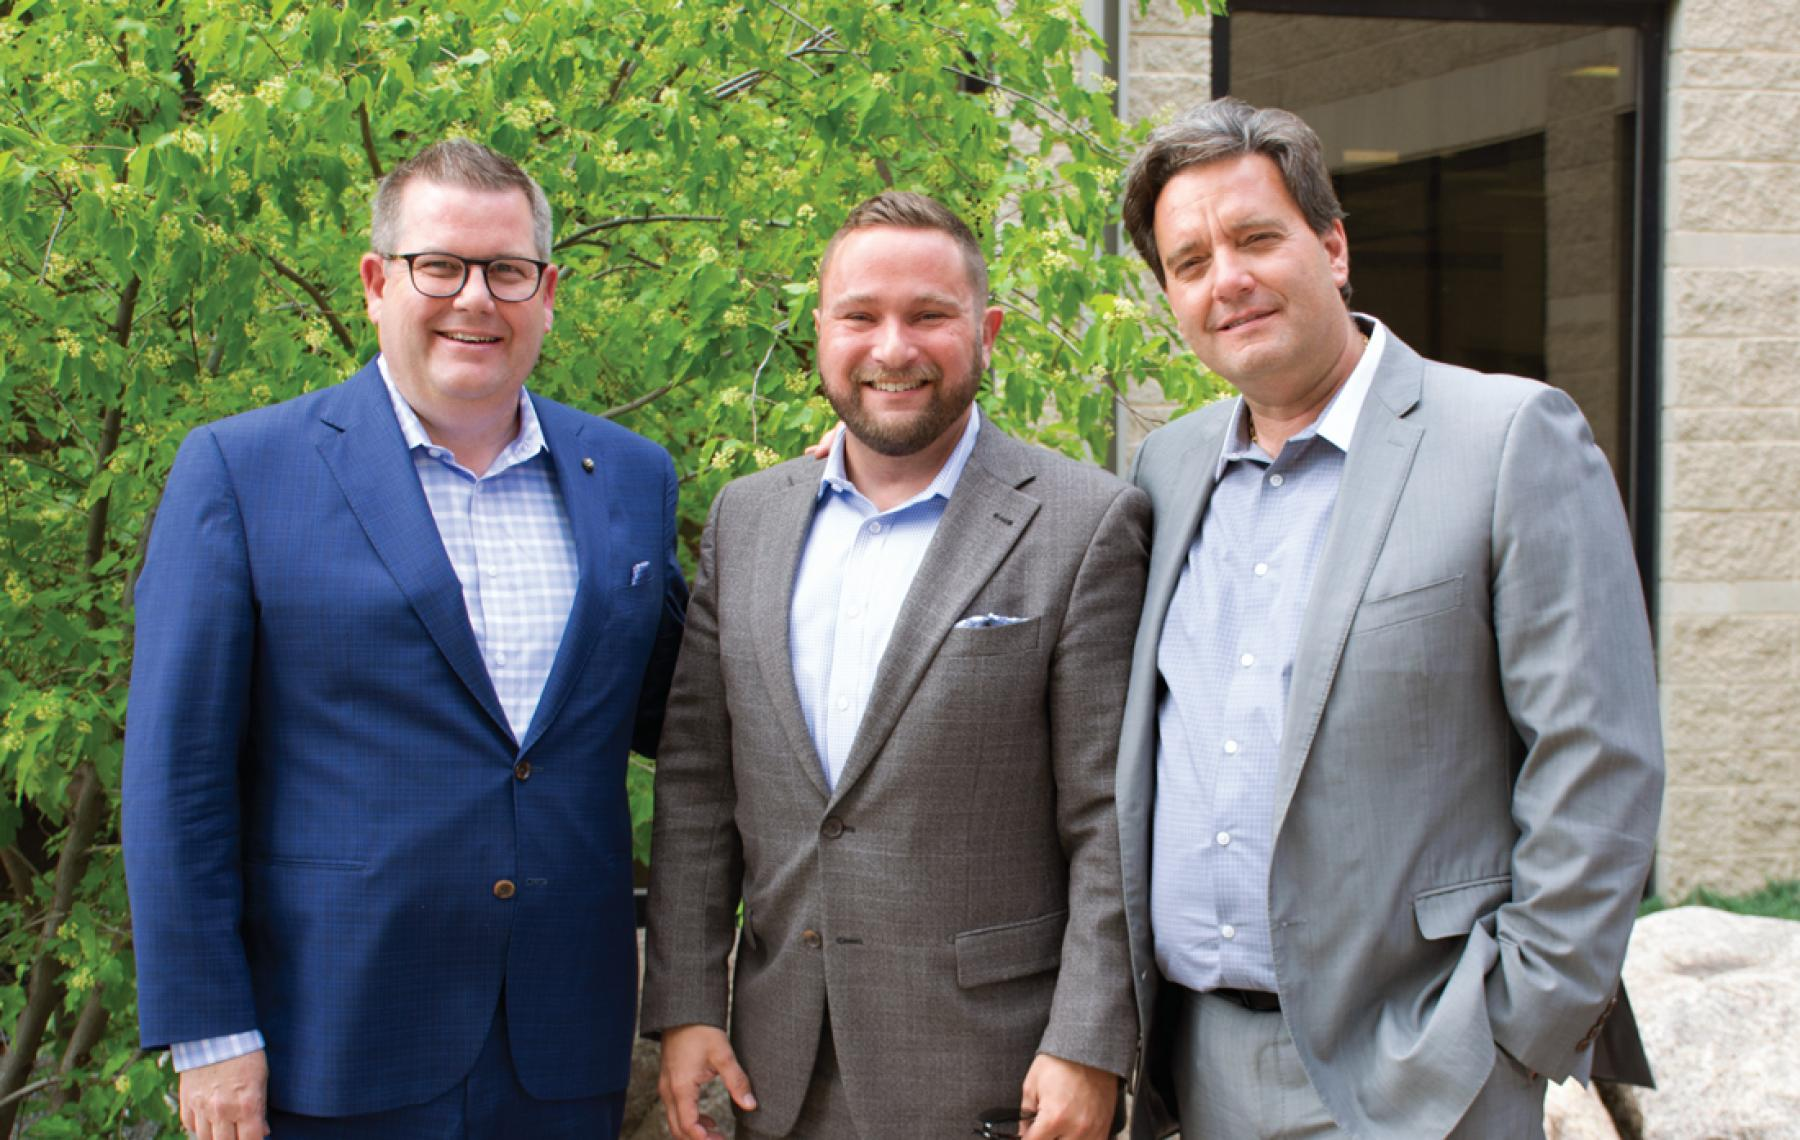 Jonathon Lyon (president and CEO of the HSC Foundation), Vince Barletta (president and CEO of the St. Boniface Hospital Foundation) and Stefano Grande (president and CEO of The Children's Hospital Foundation of Manitoba), 2019 Photo Credit